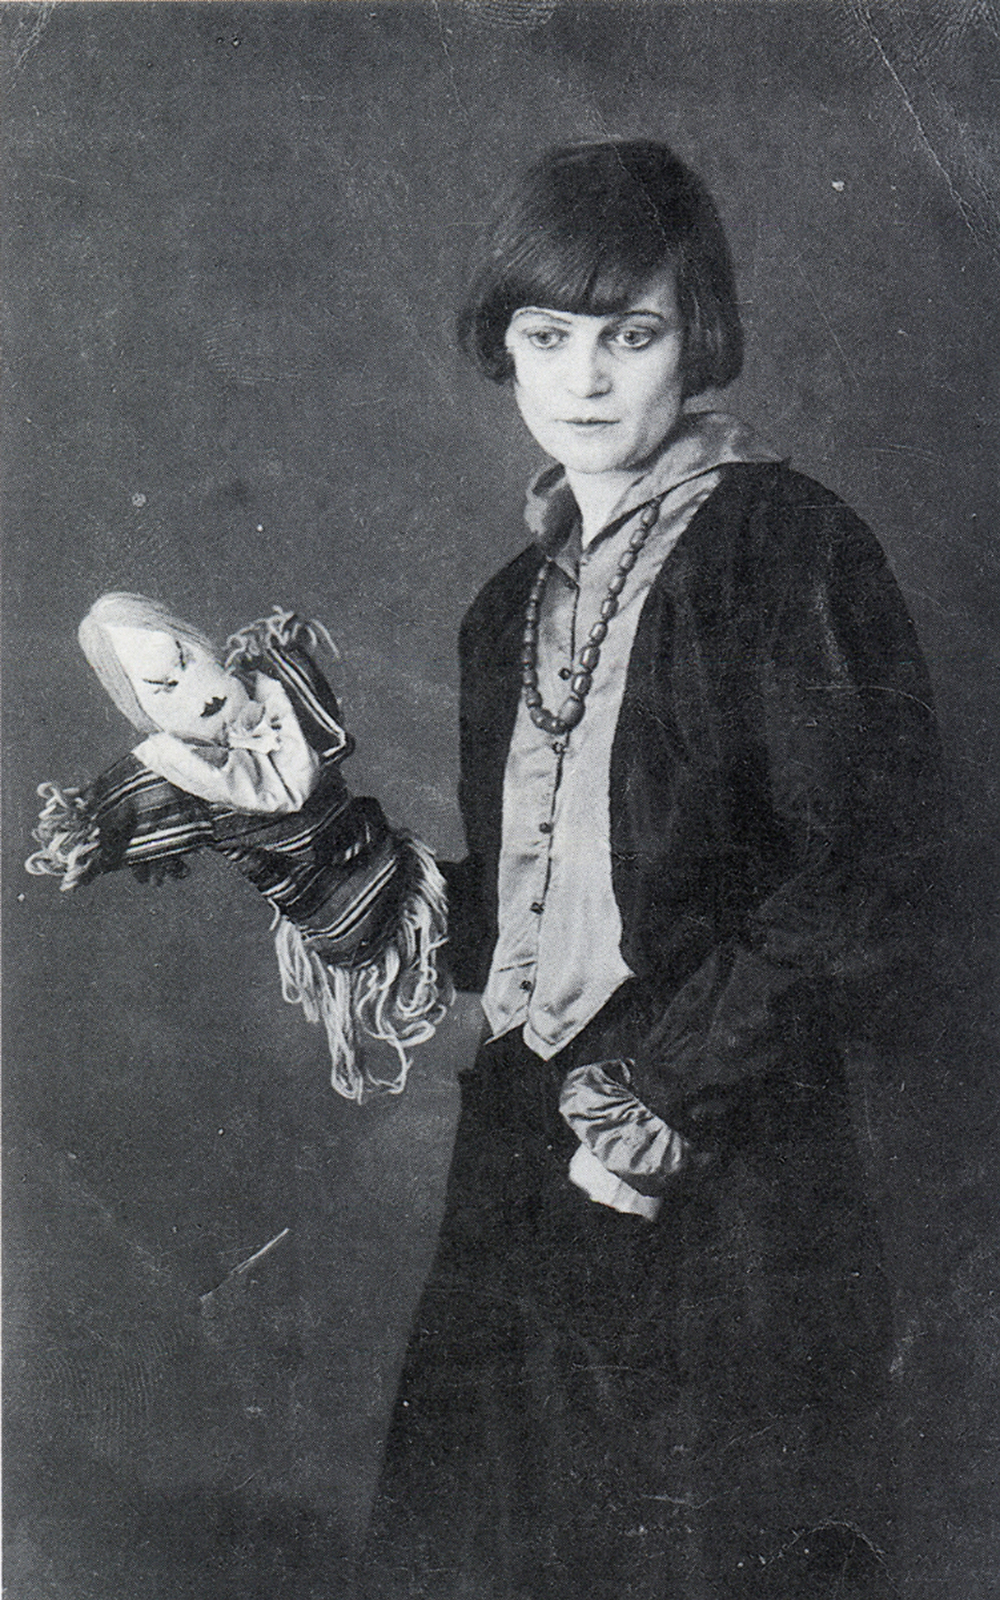 Hennings and one of her puppets